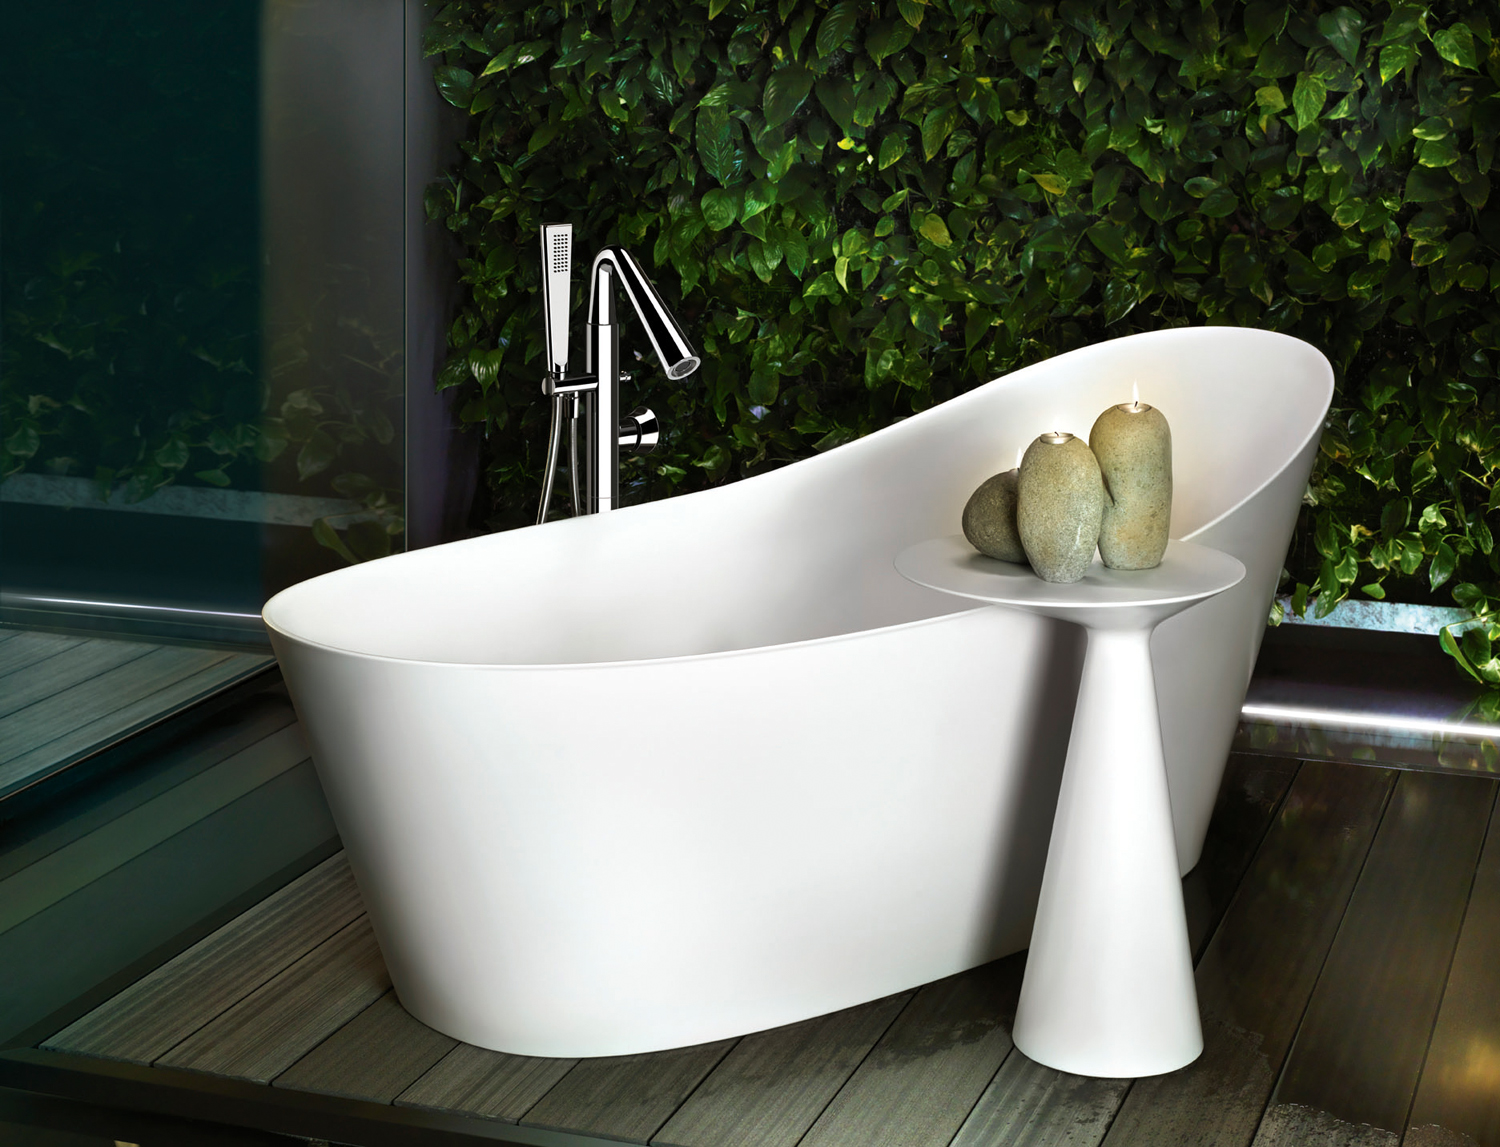 Jungle-inspired bathroom accessories - Completehome